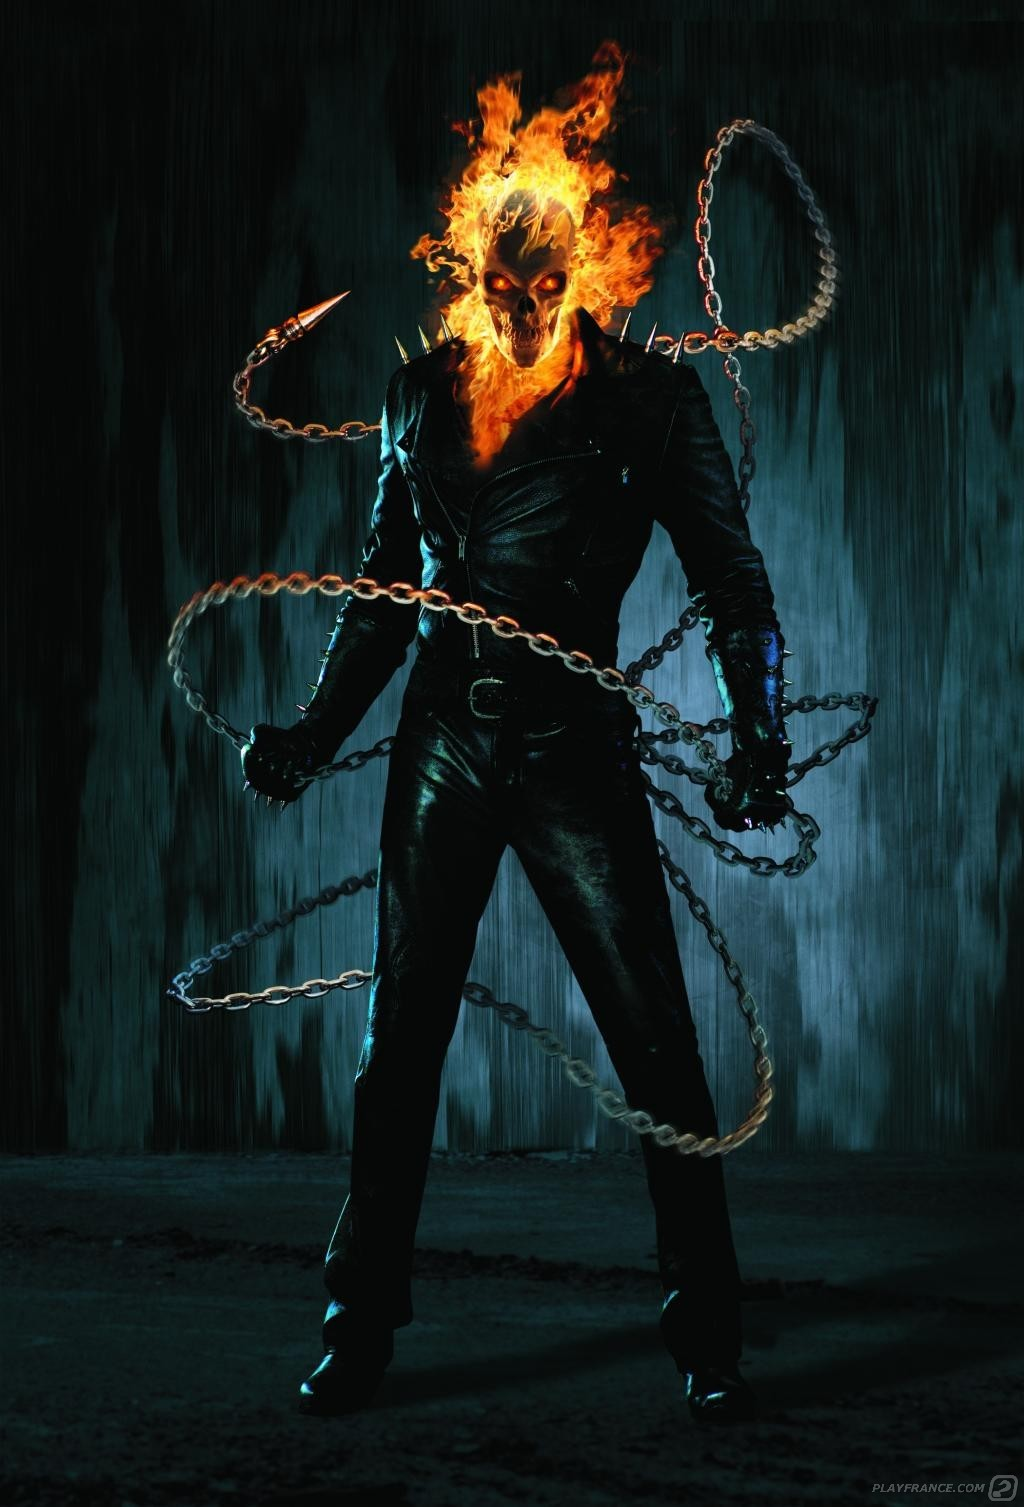 Watch Ghost Rider 2 Online Download Ghost Rider 2 Movie